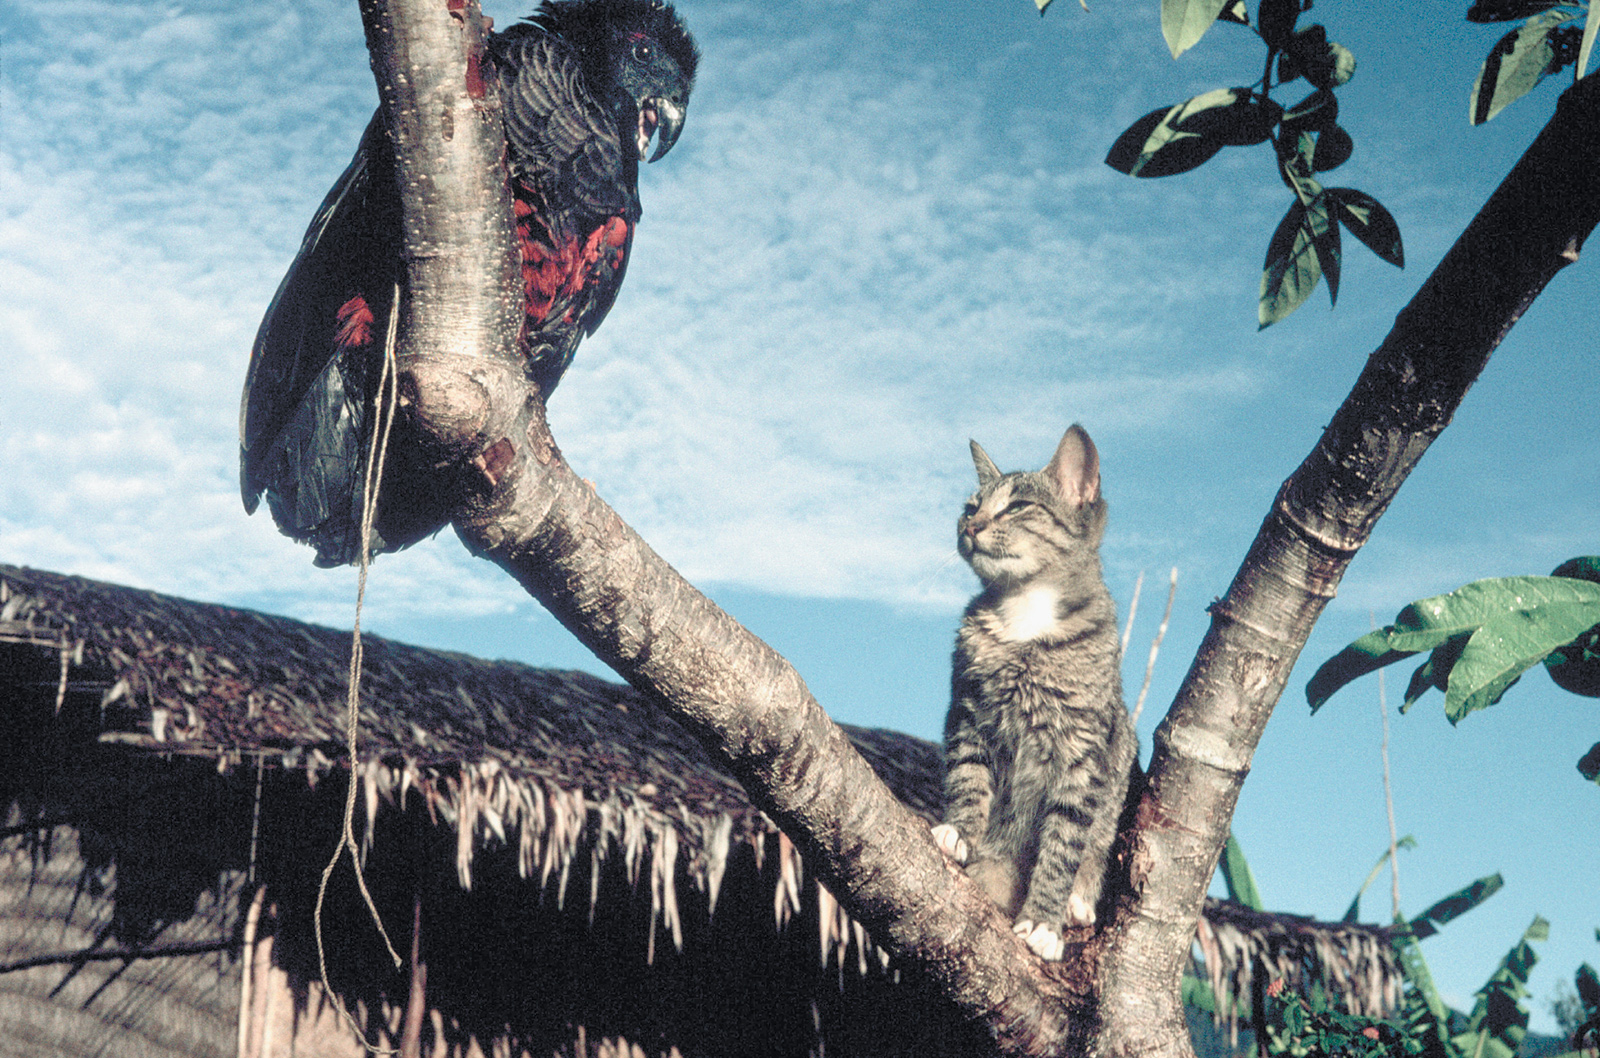 A tropical bird and a tabby cat, Herowana, Papua New Guinea, 1993